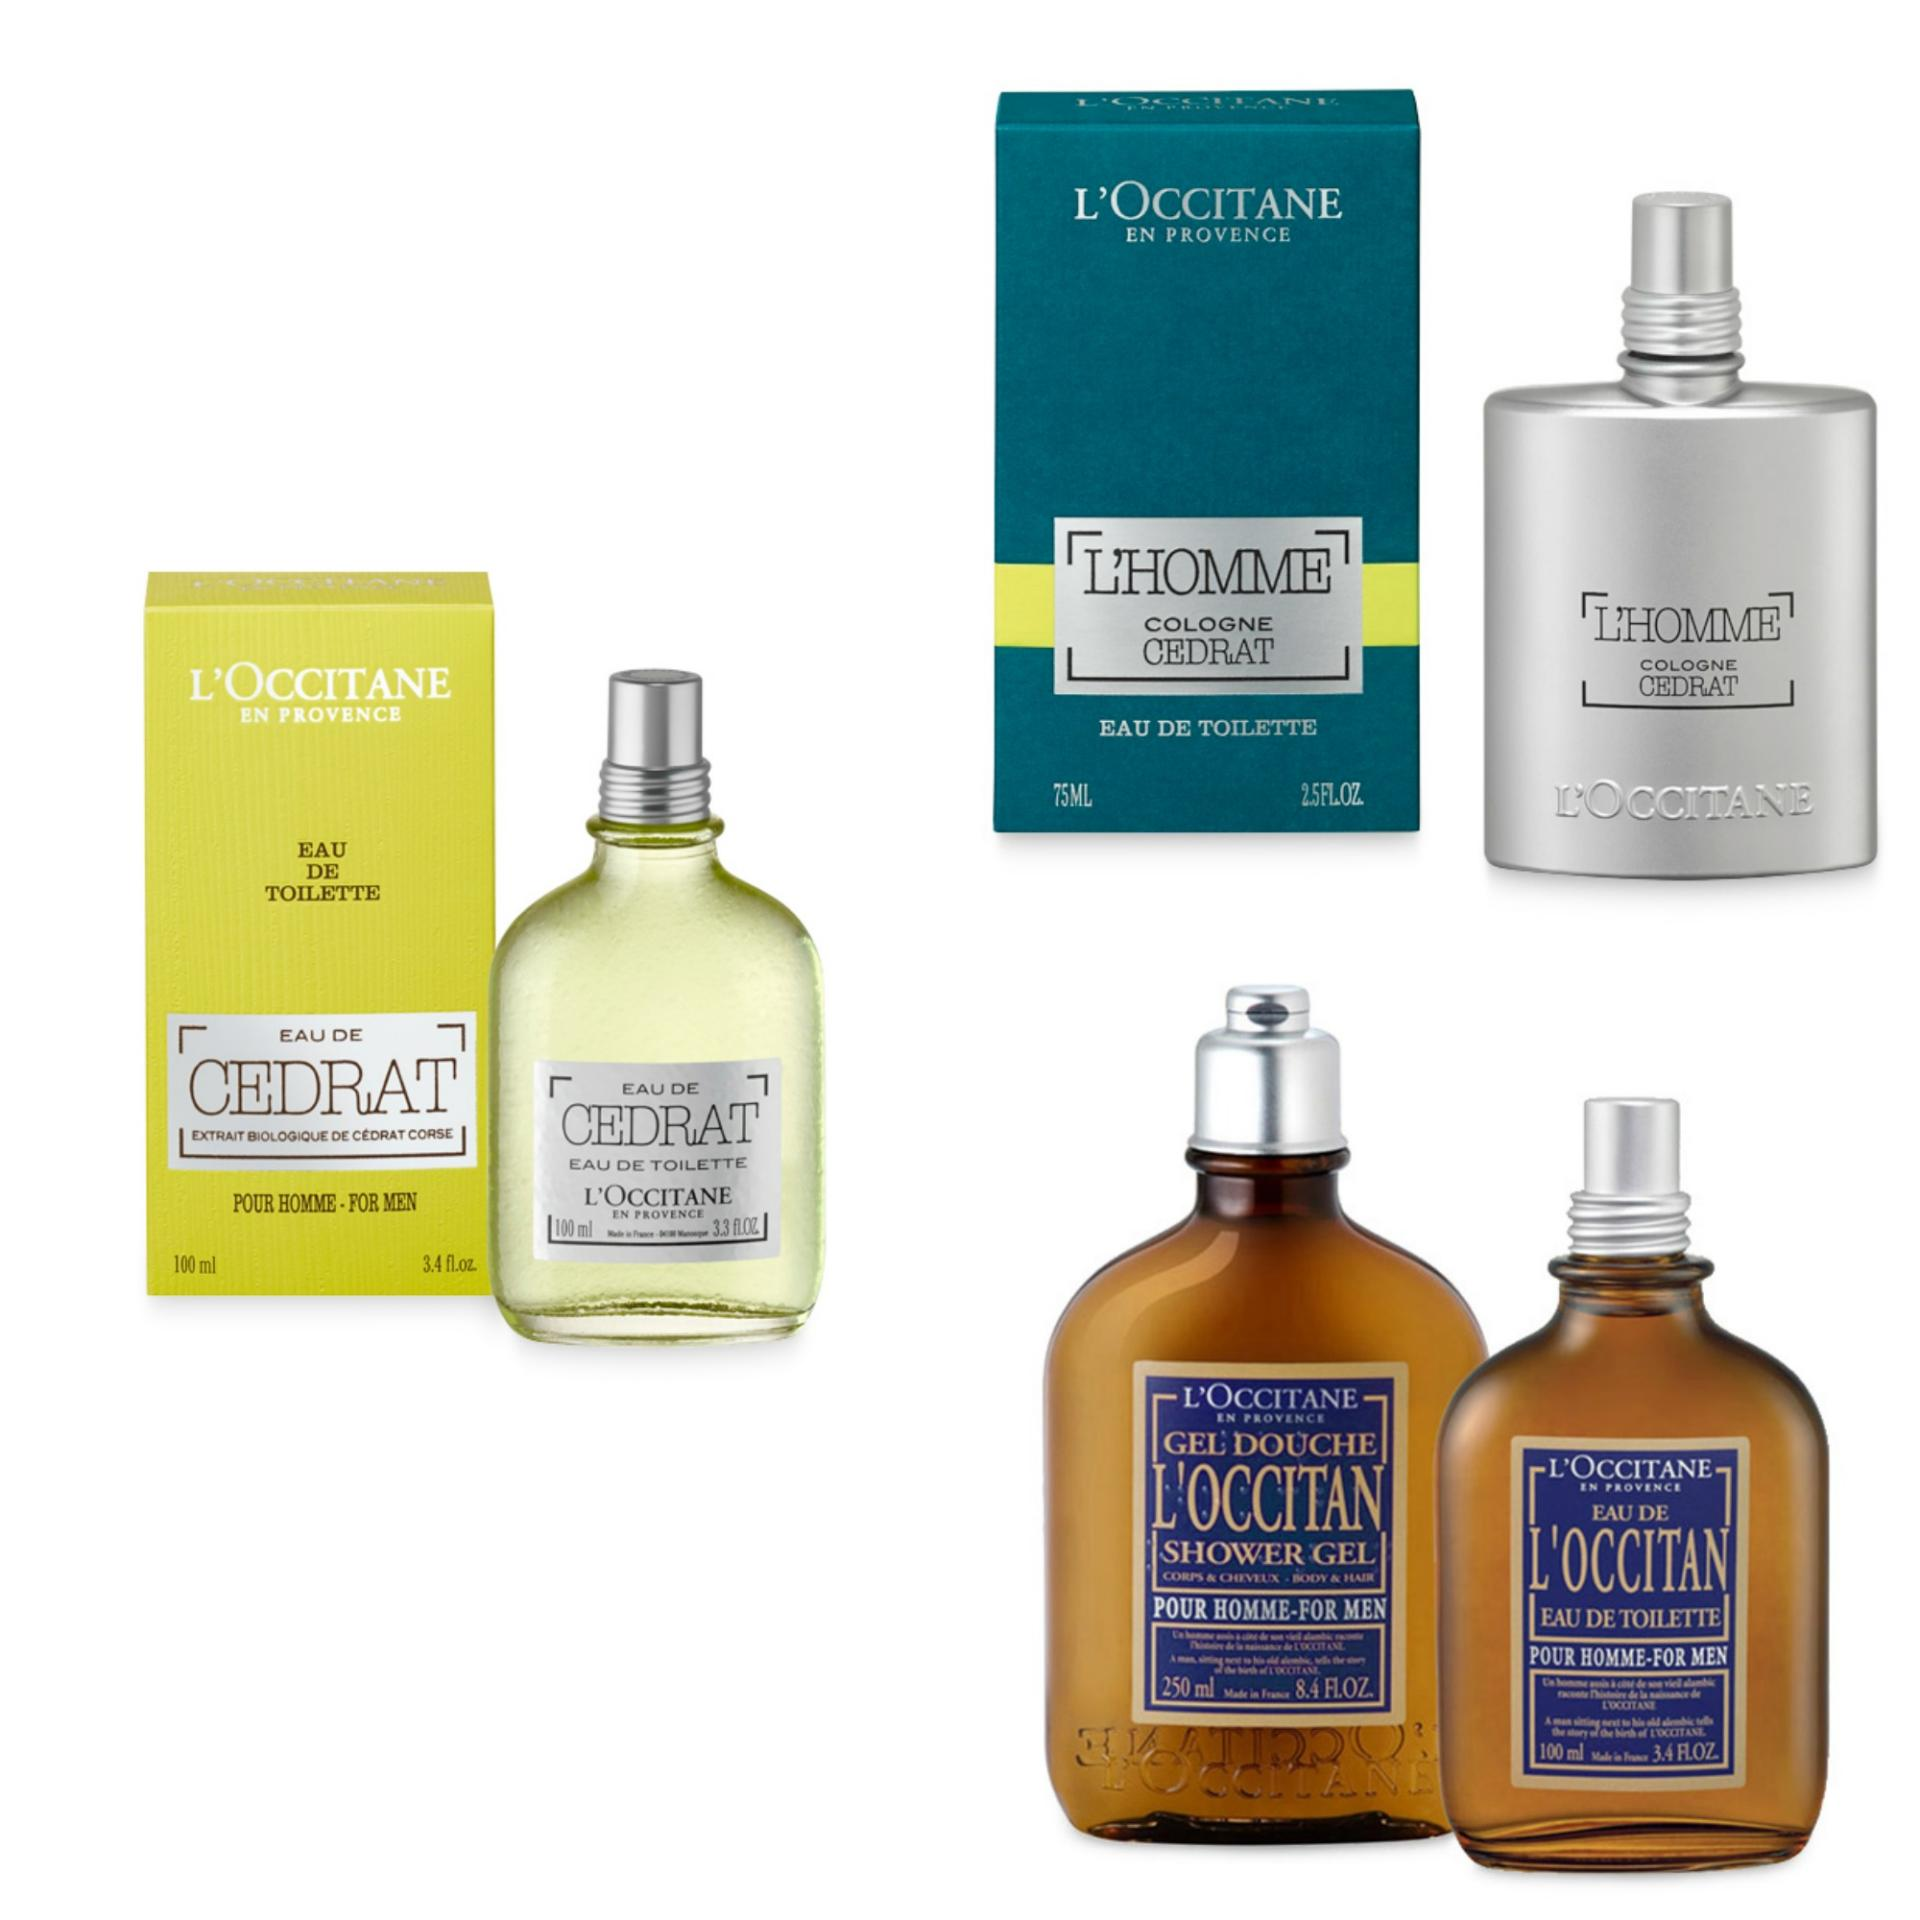 L'Occitane Gift Guide for Men